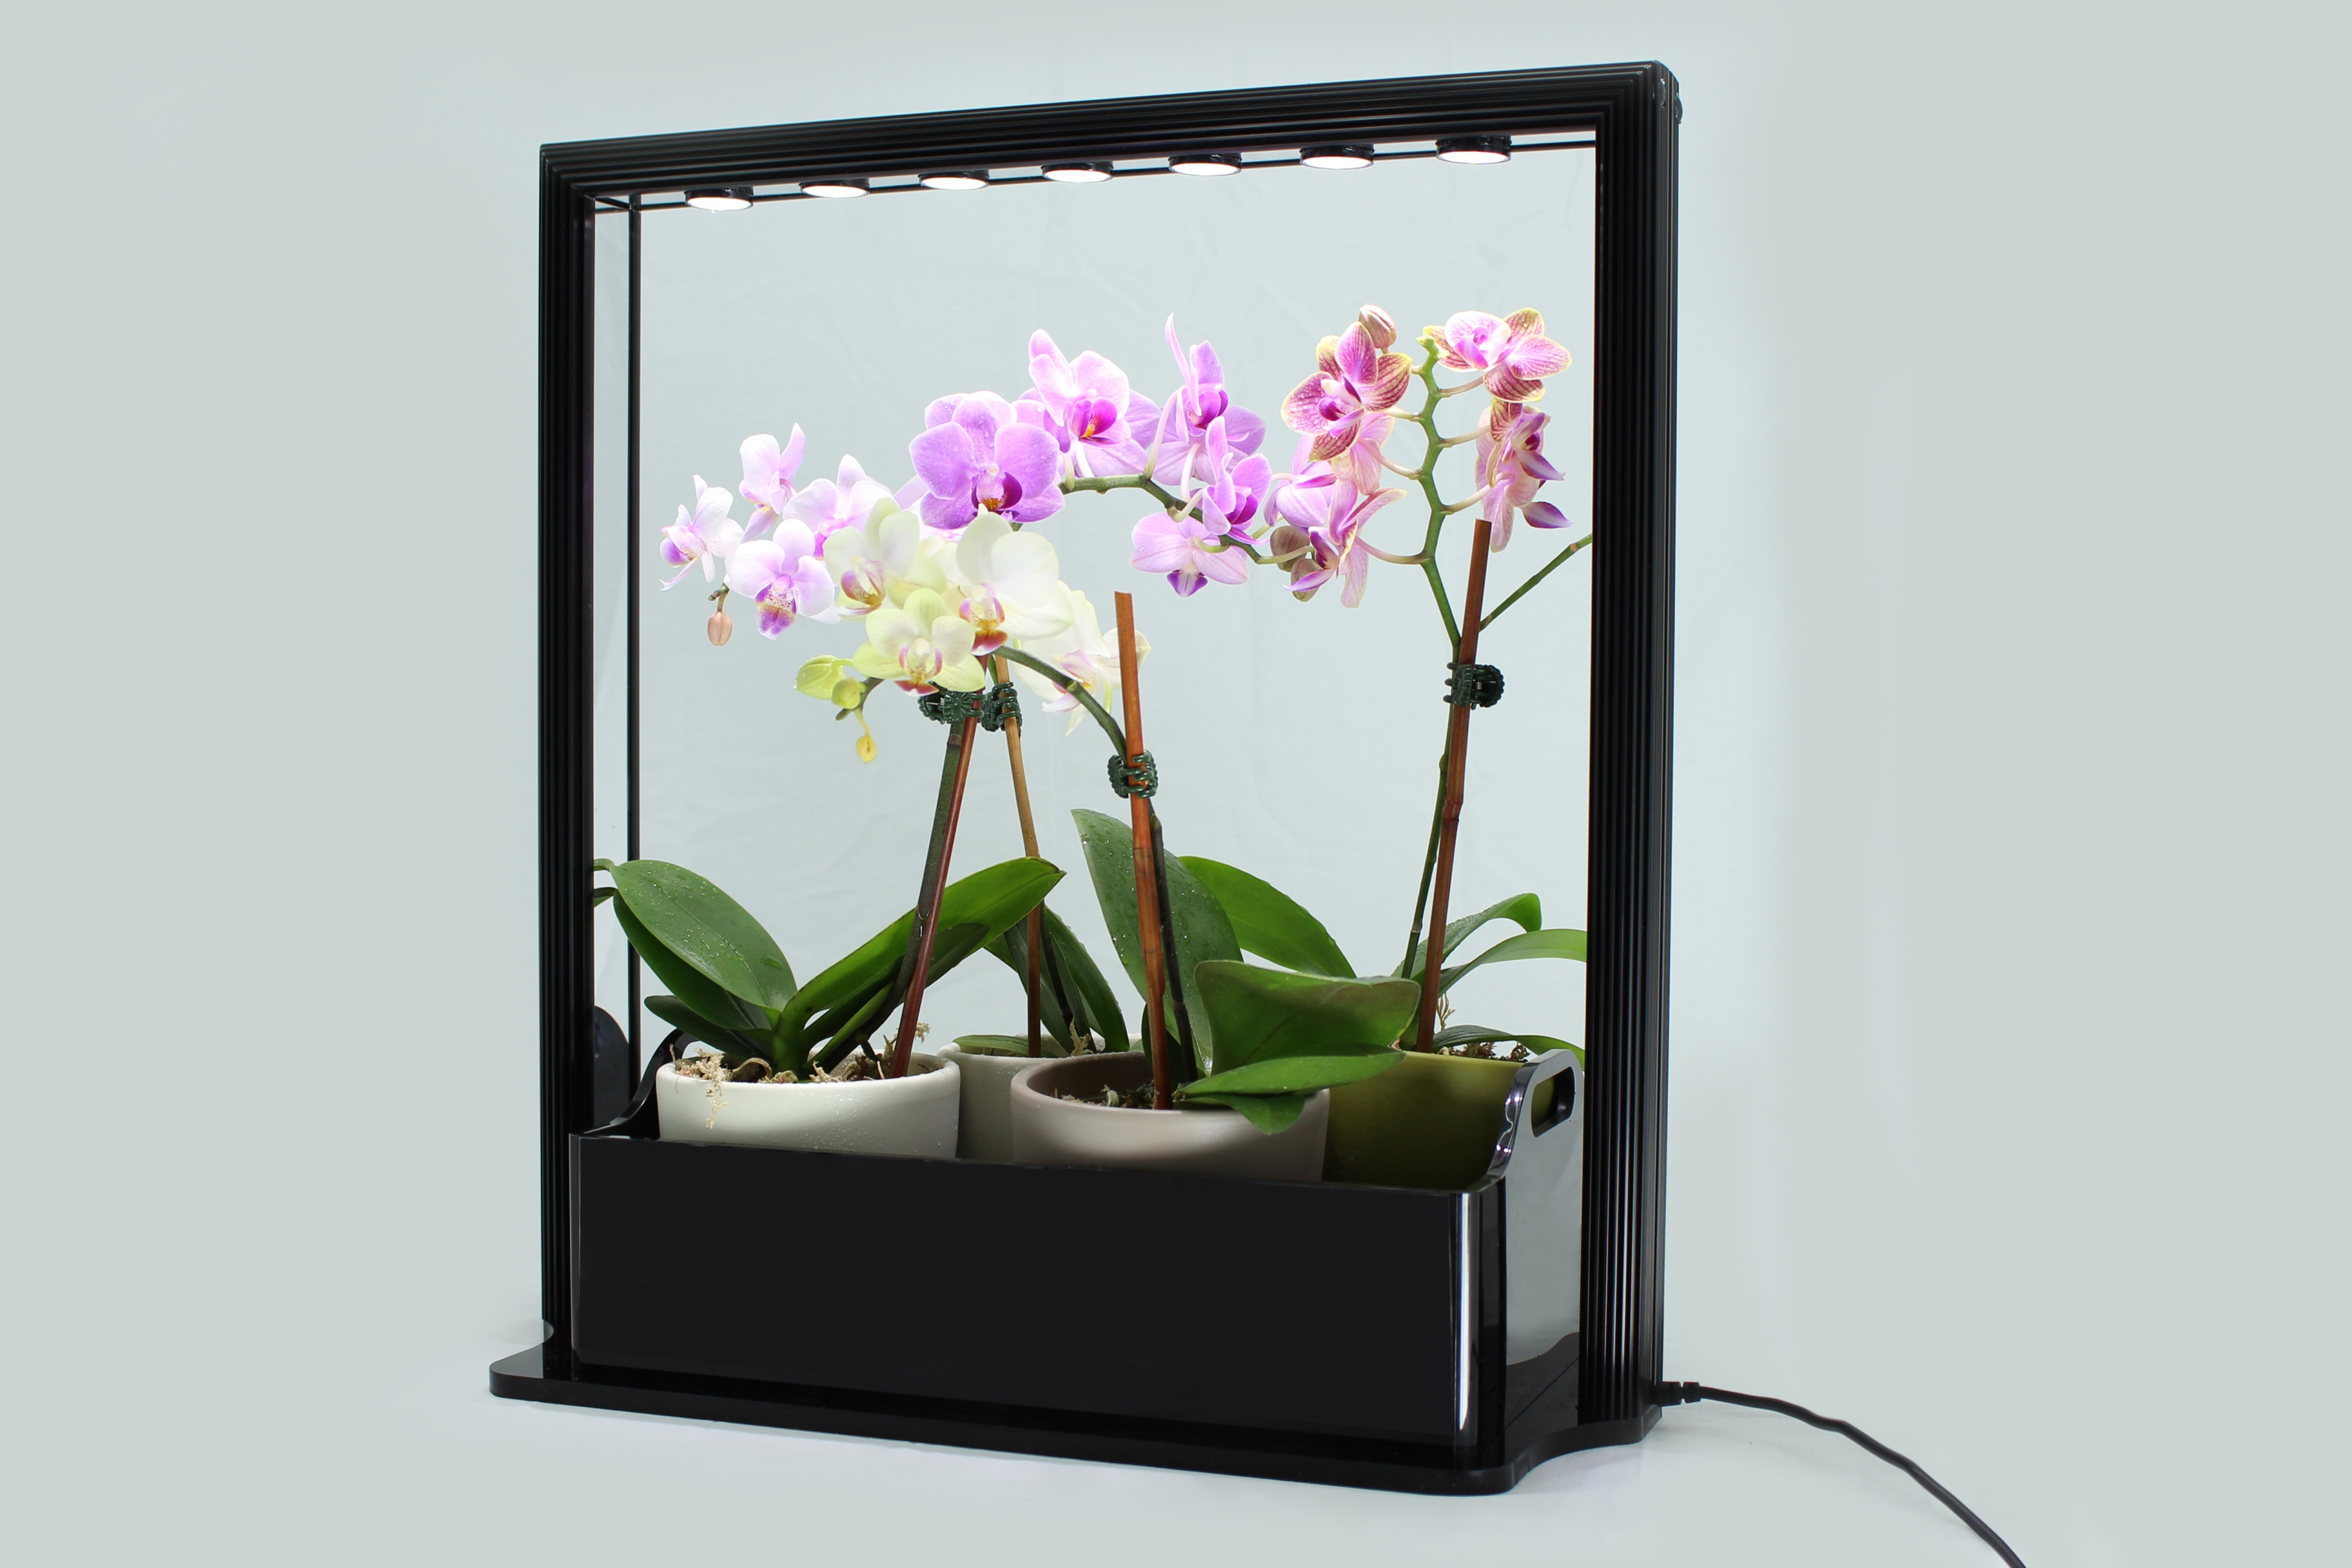 Grow Lights For Indoor Plants New Led Mini Garden From Inhomegardening Is A Great